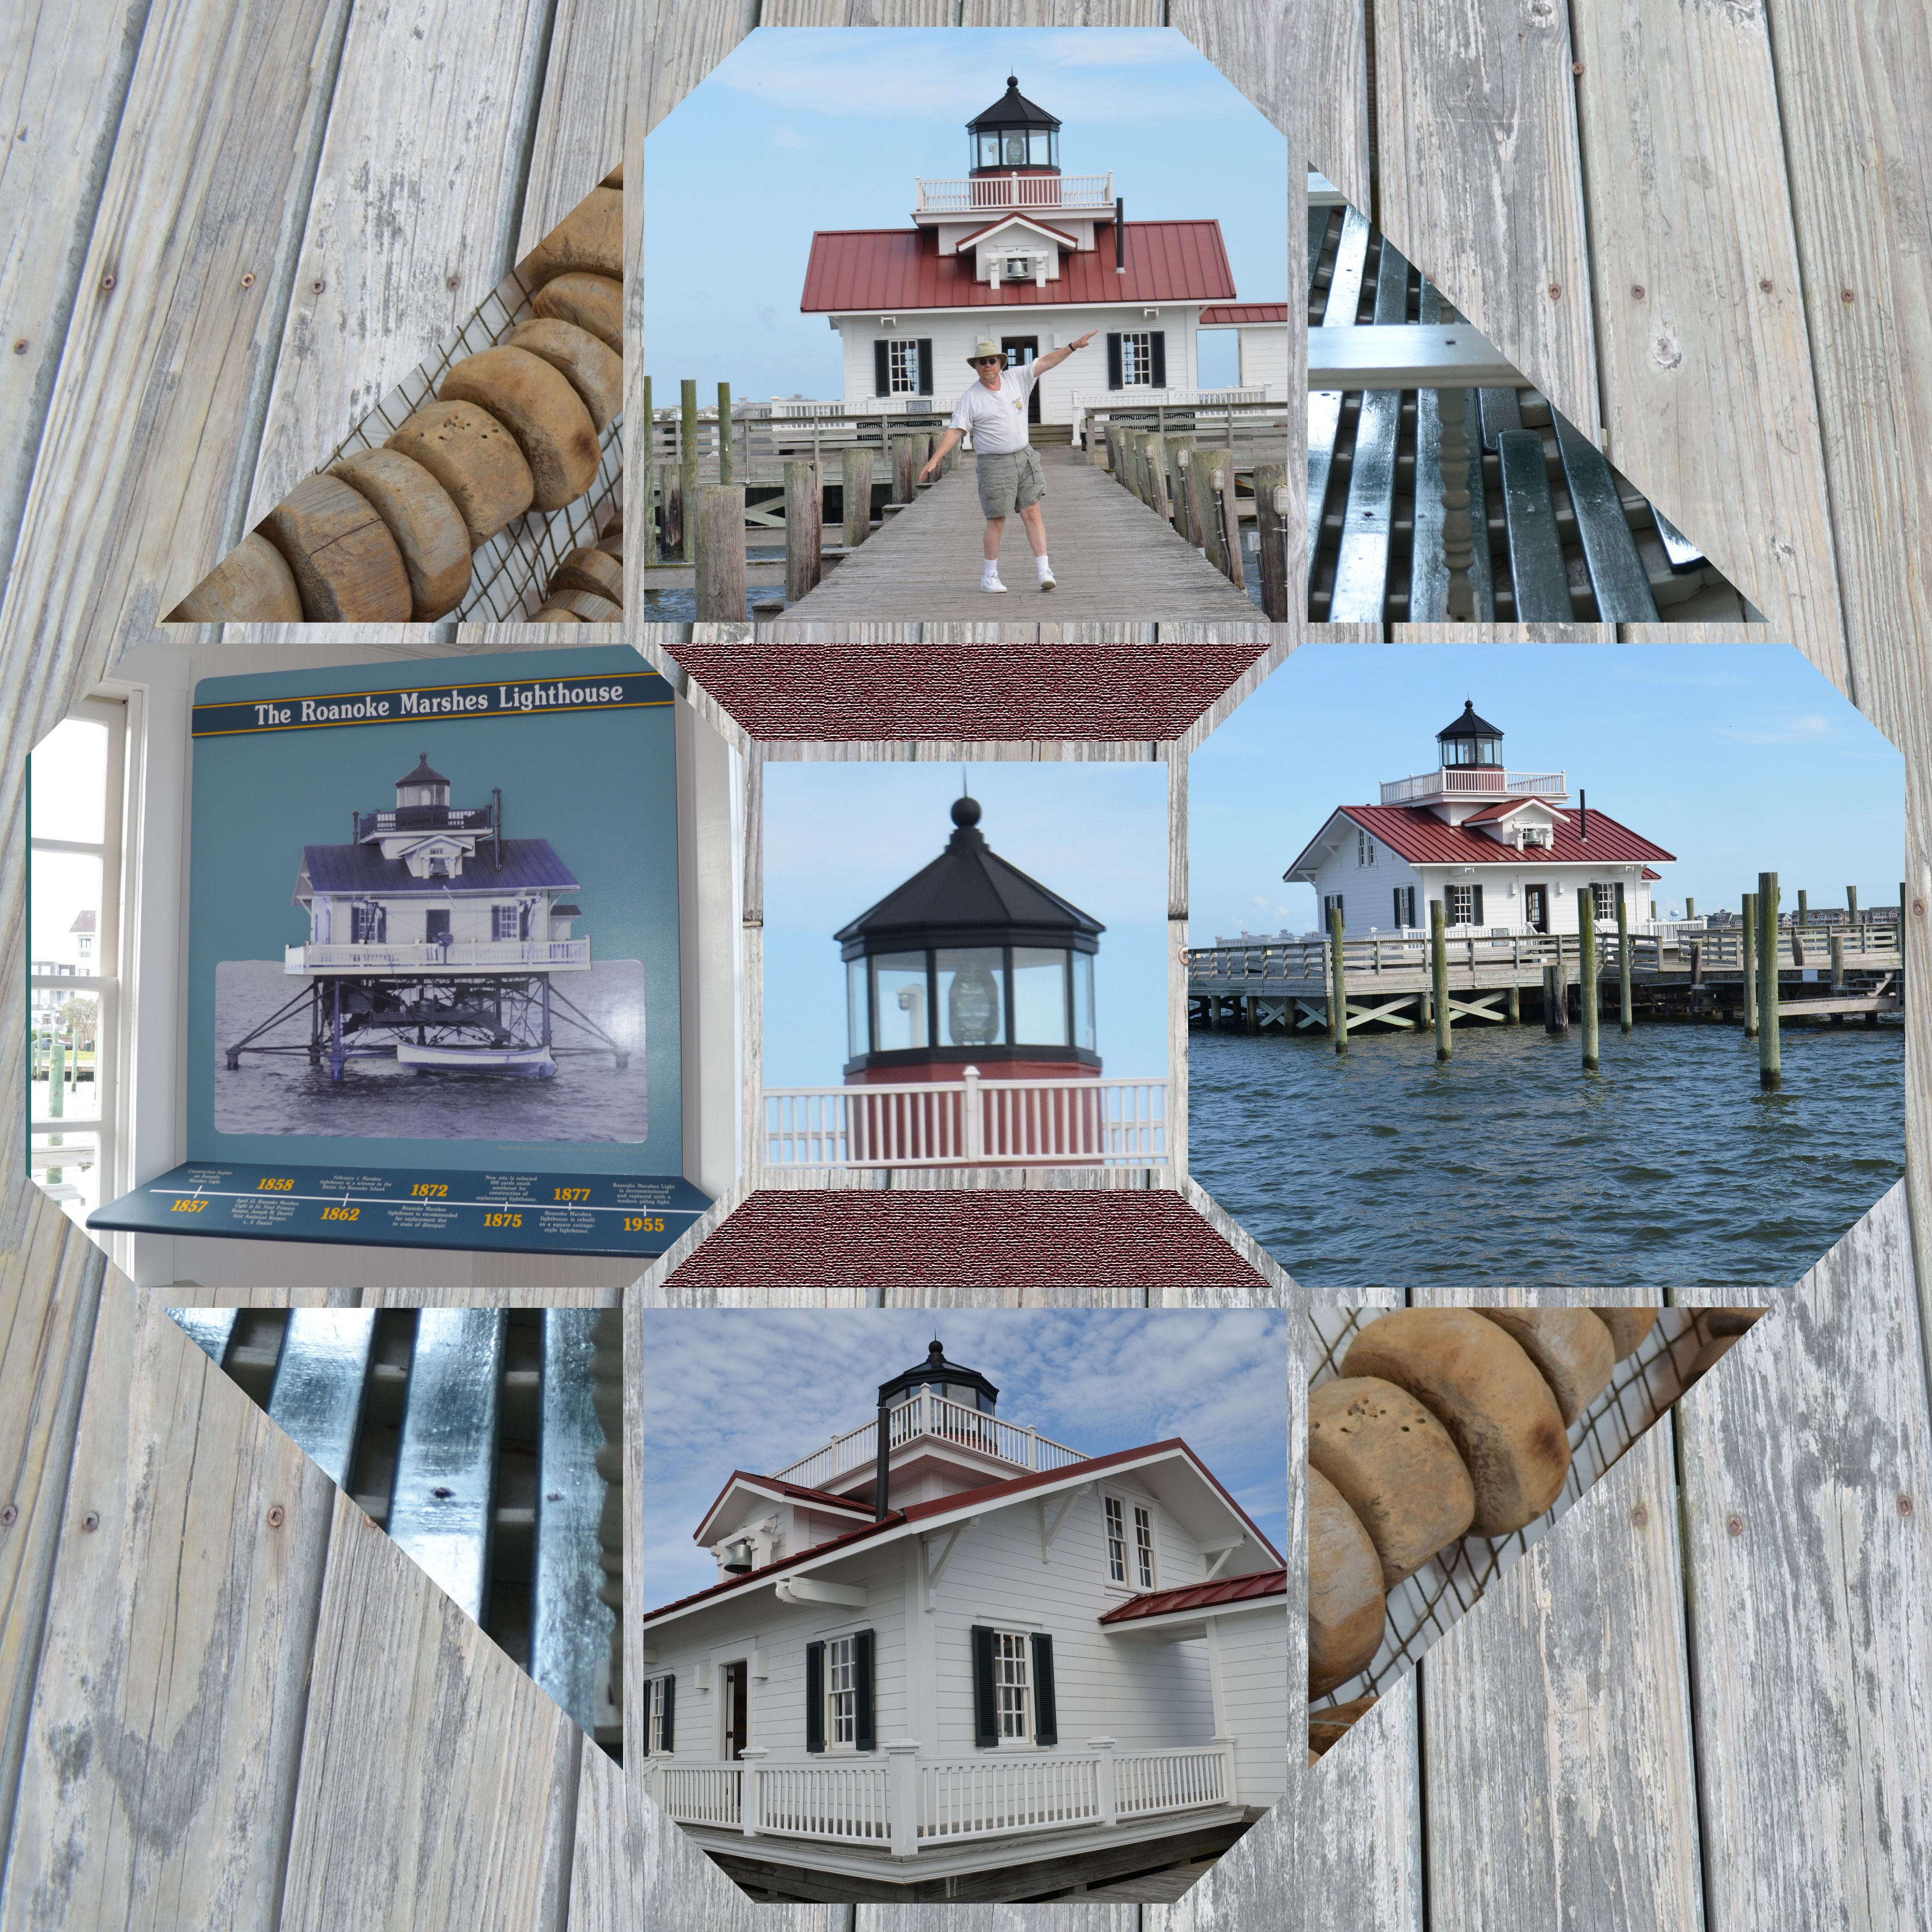 Marshes Lighthouse Manteo NC layout by Sandra B King using Lea France Digital Stained Glass